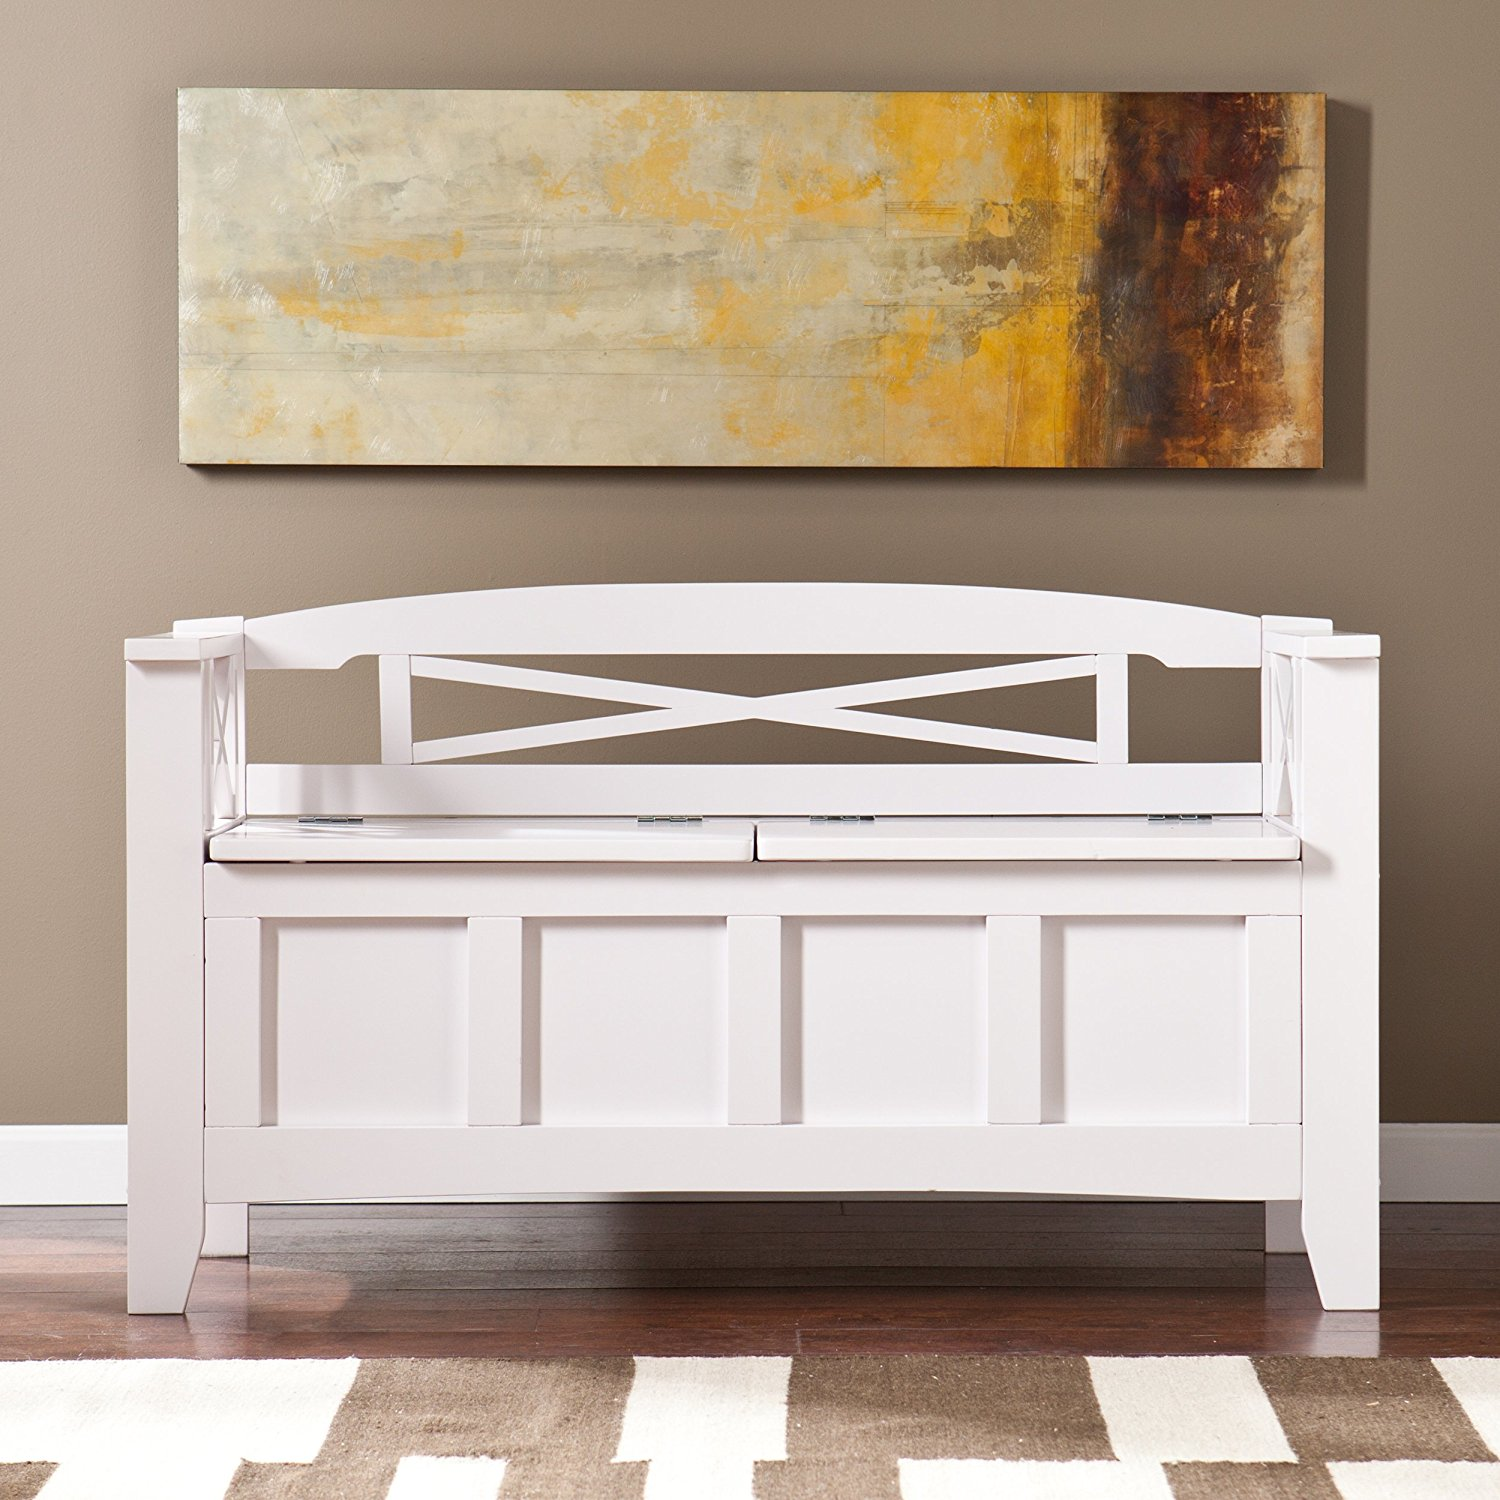 Peachy White Wood Storage Bench Arms Royals Courage Ultimate Evergreenethics Interior Chair Design Evergreenethicsorg